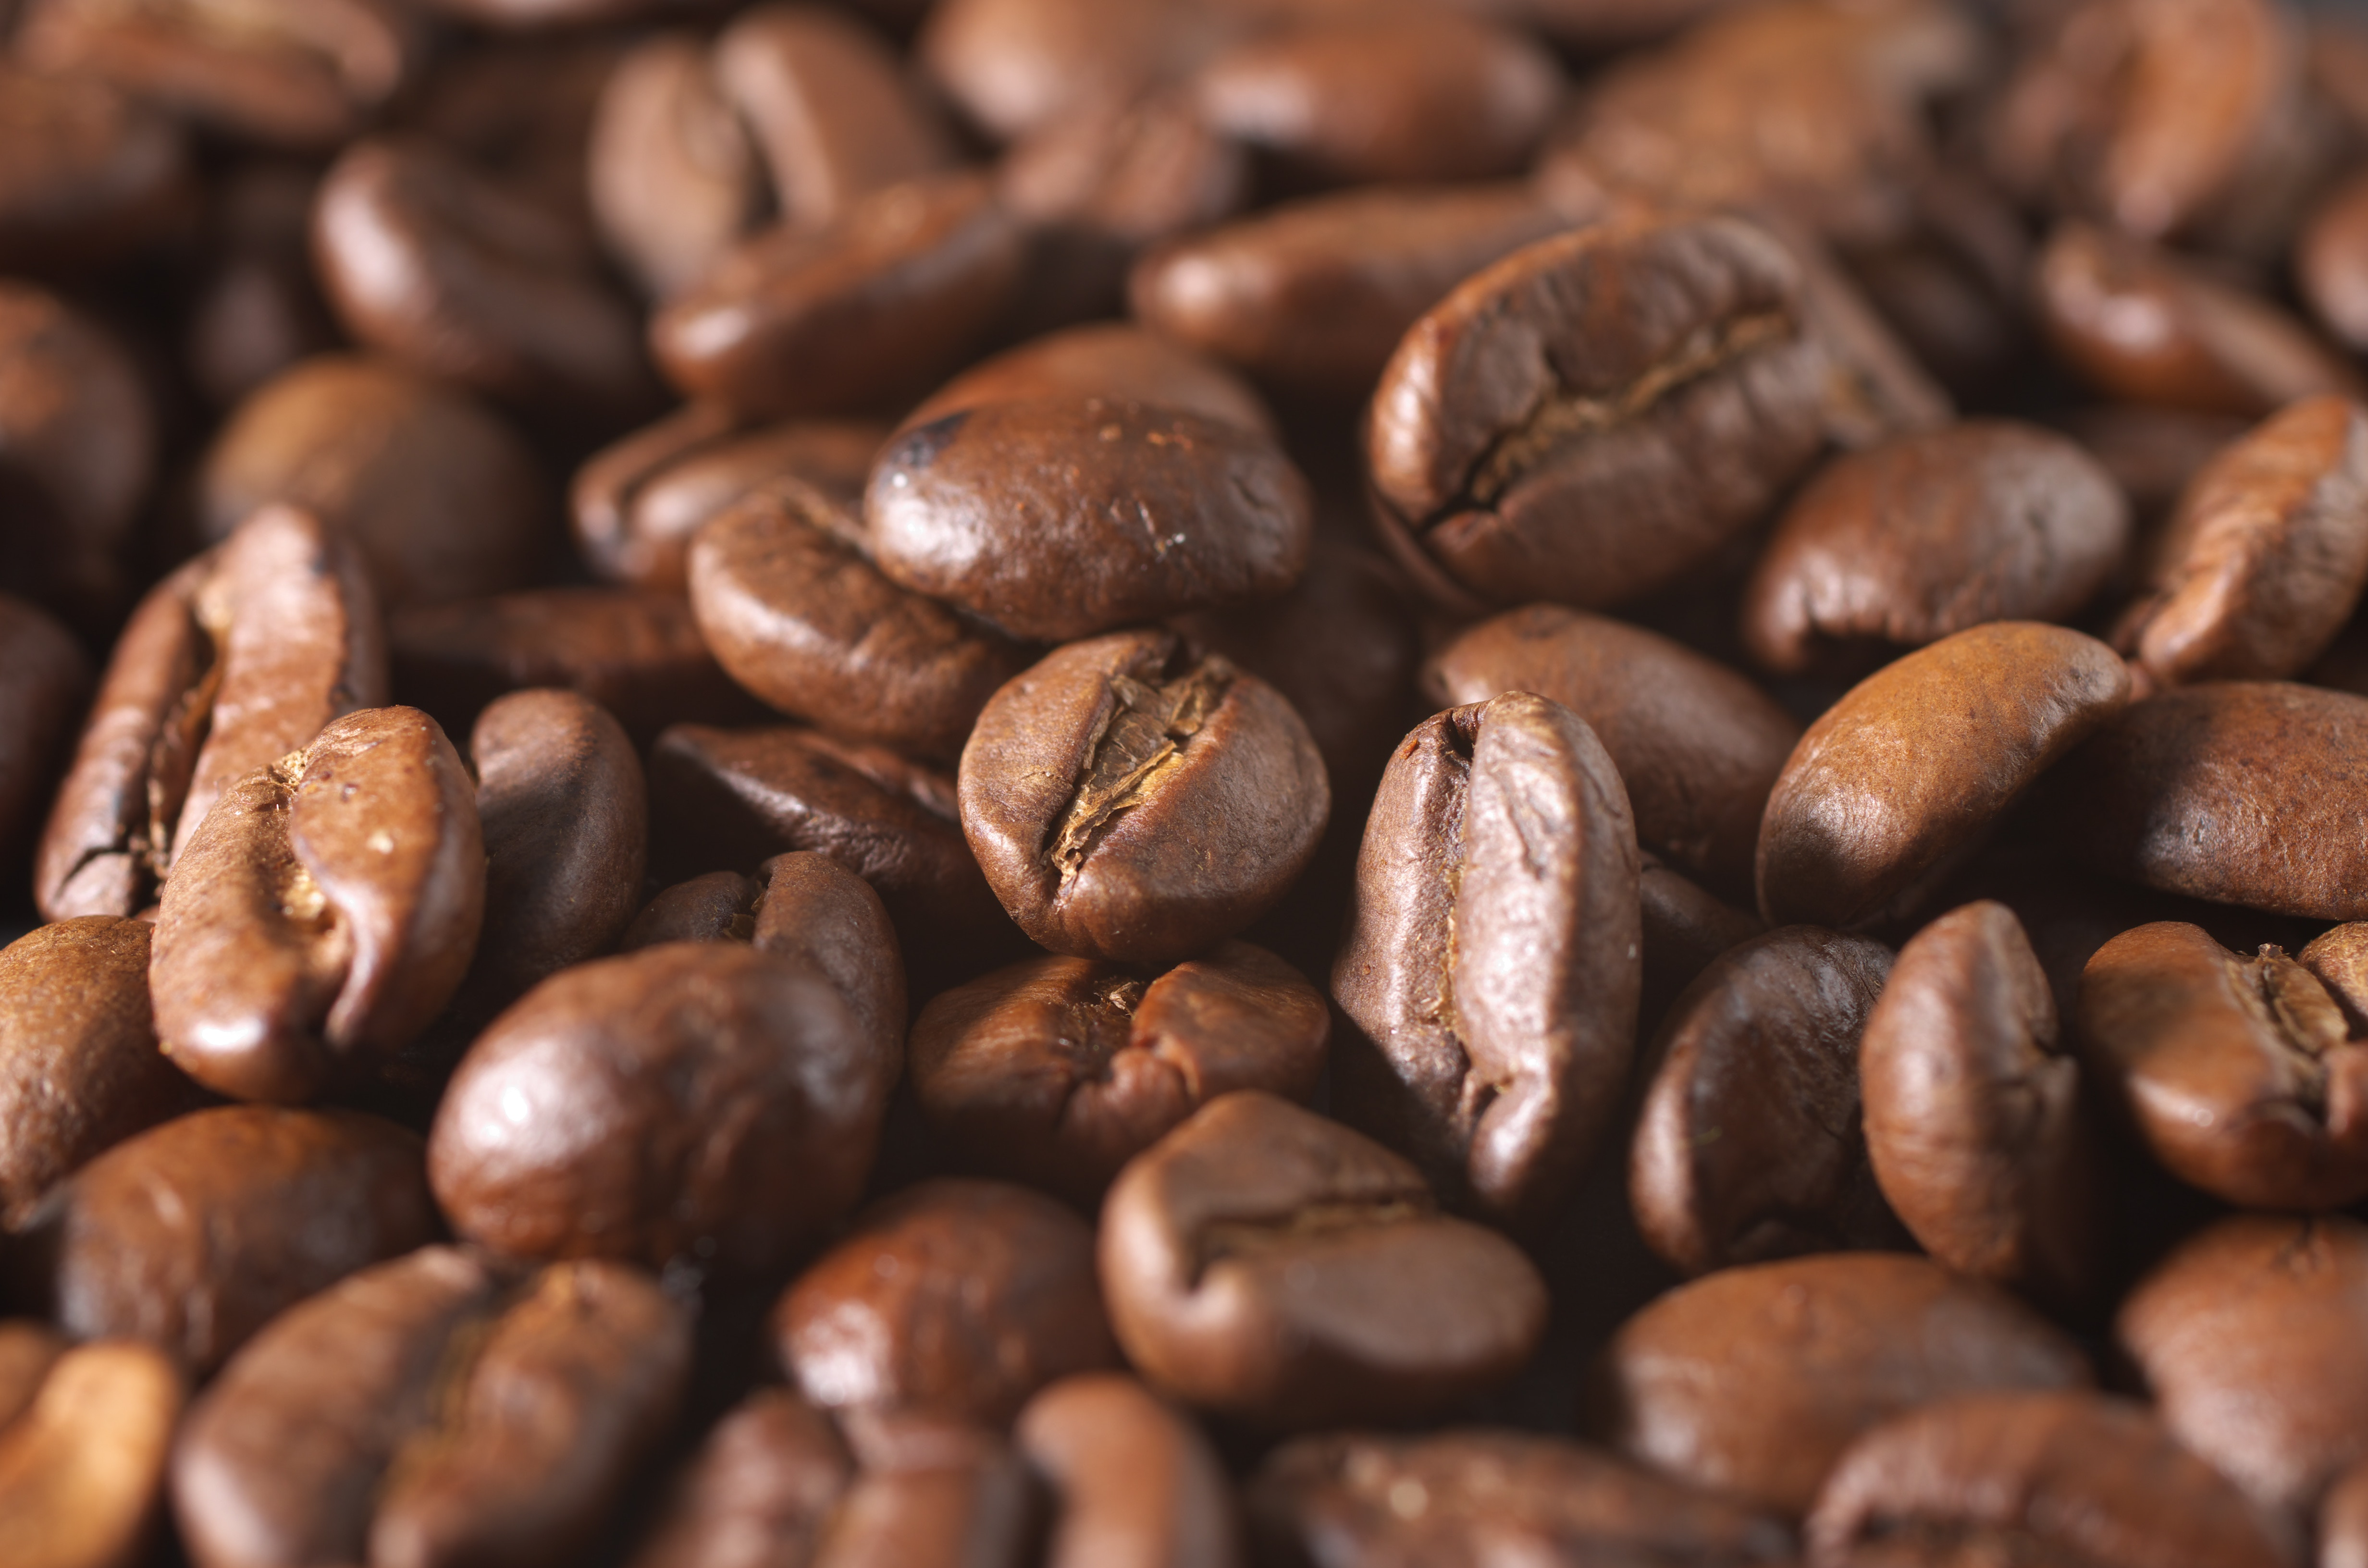 provenance in the international coffee market?